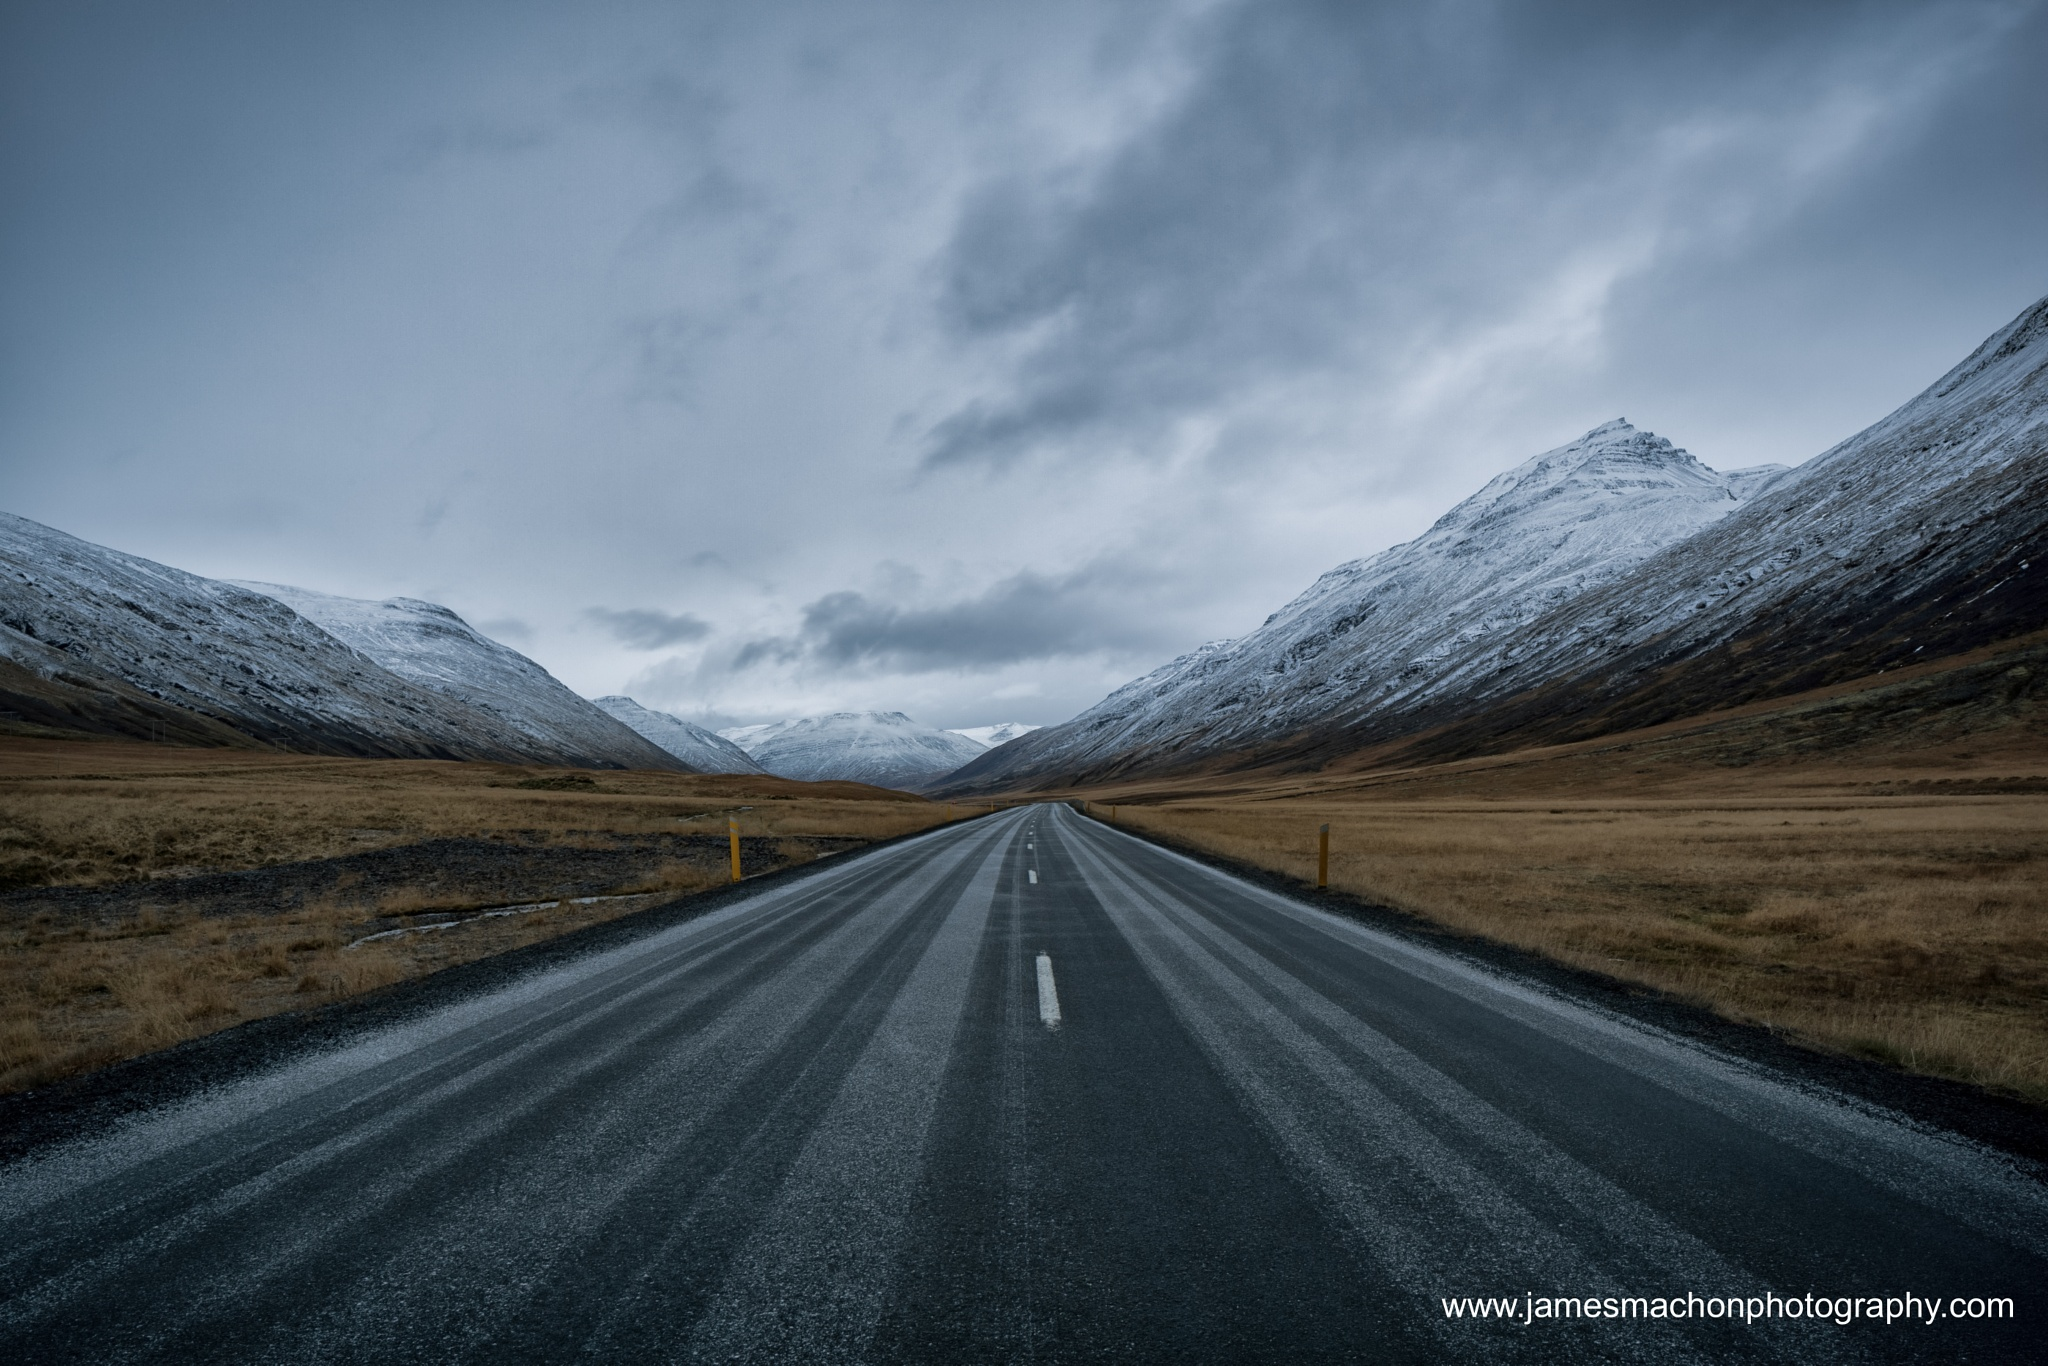 Mountain Road by James Machon Photography